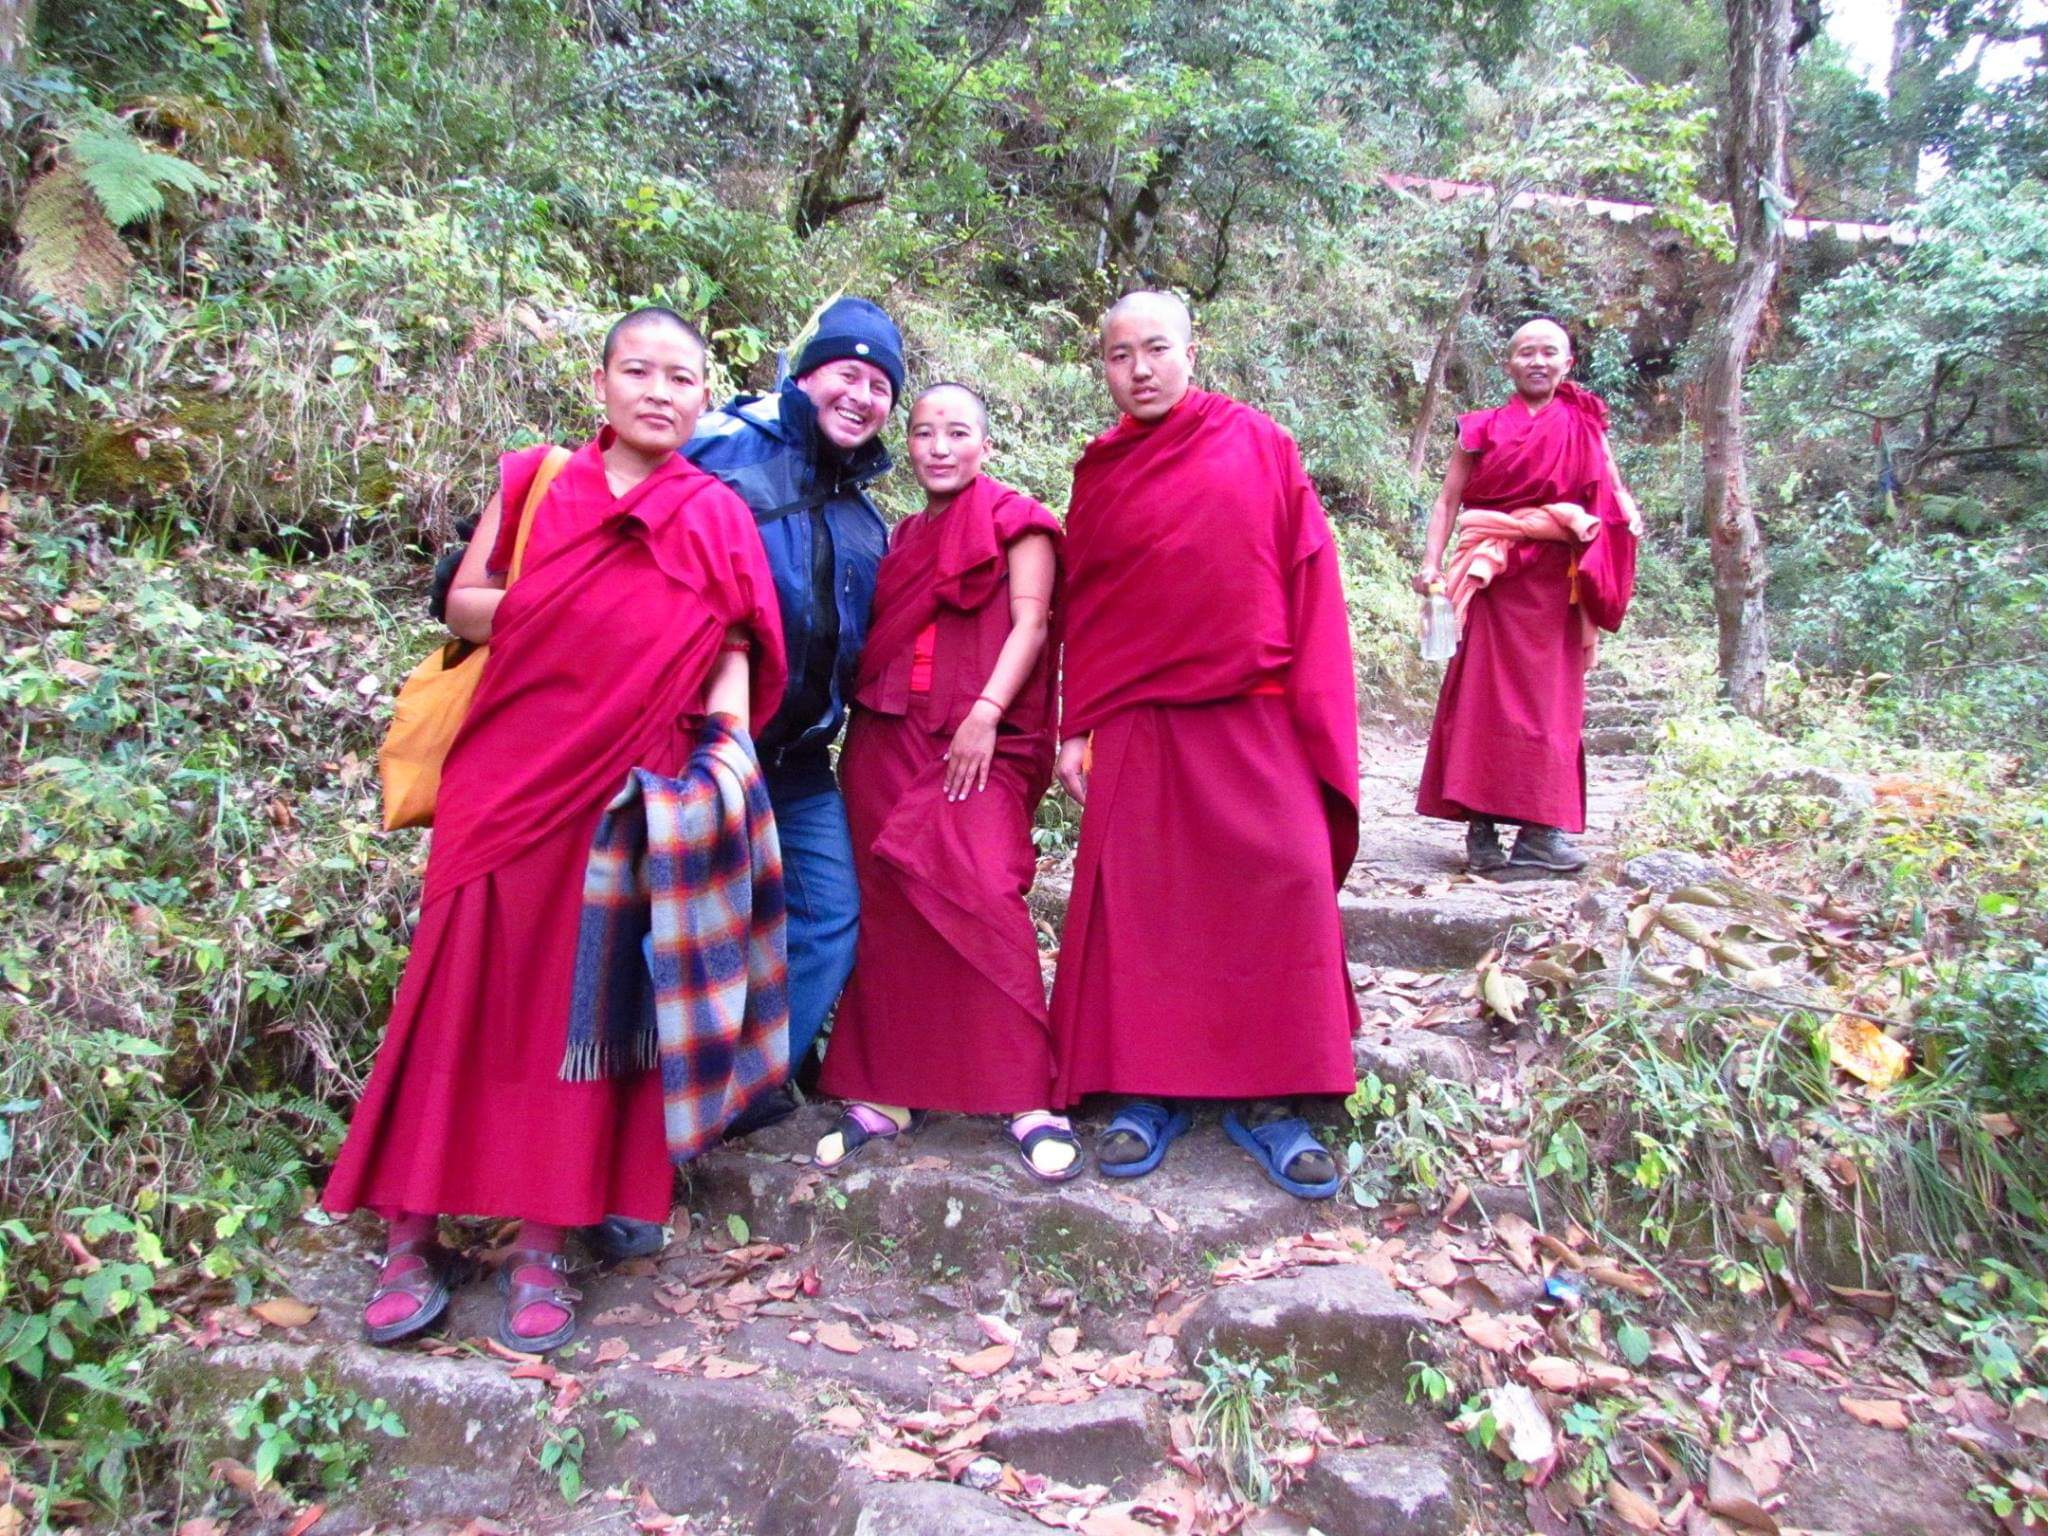 Lumbini, Nepal. Hiking with the monks to the Birthplace of Lord Buddha